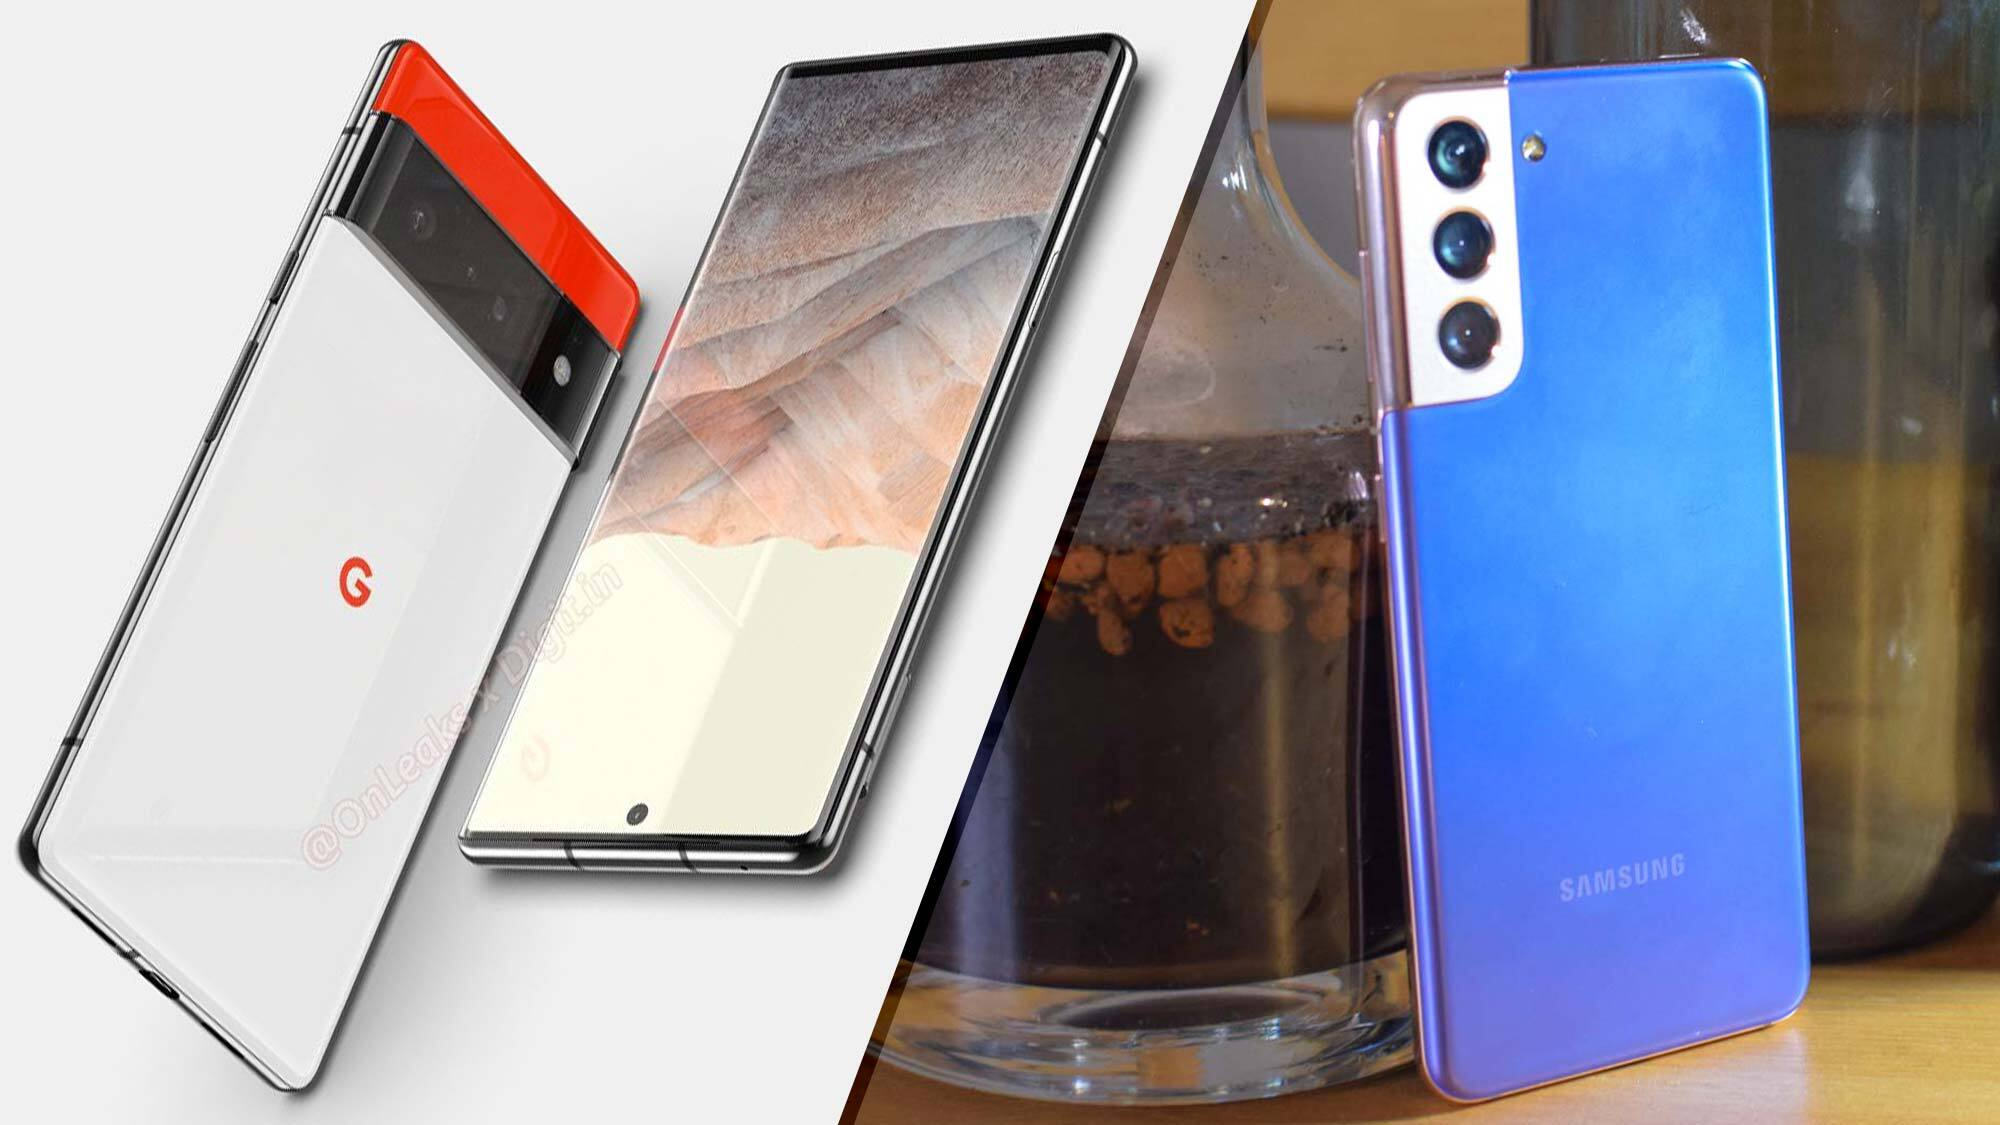 Google Pixel 6 vs. Samsung Galaxy S21: Which Android flagship will win?